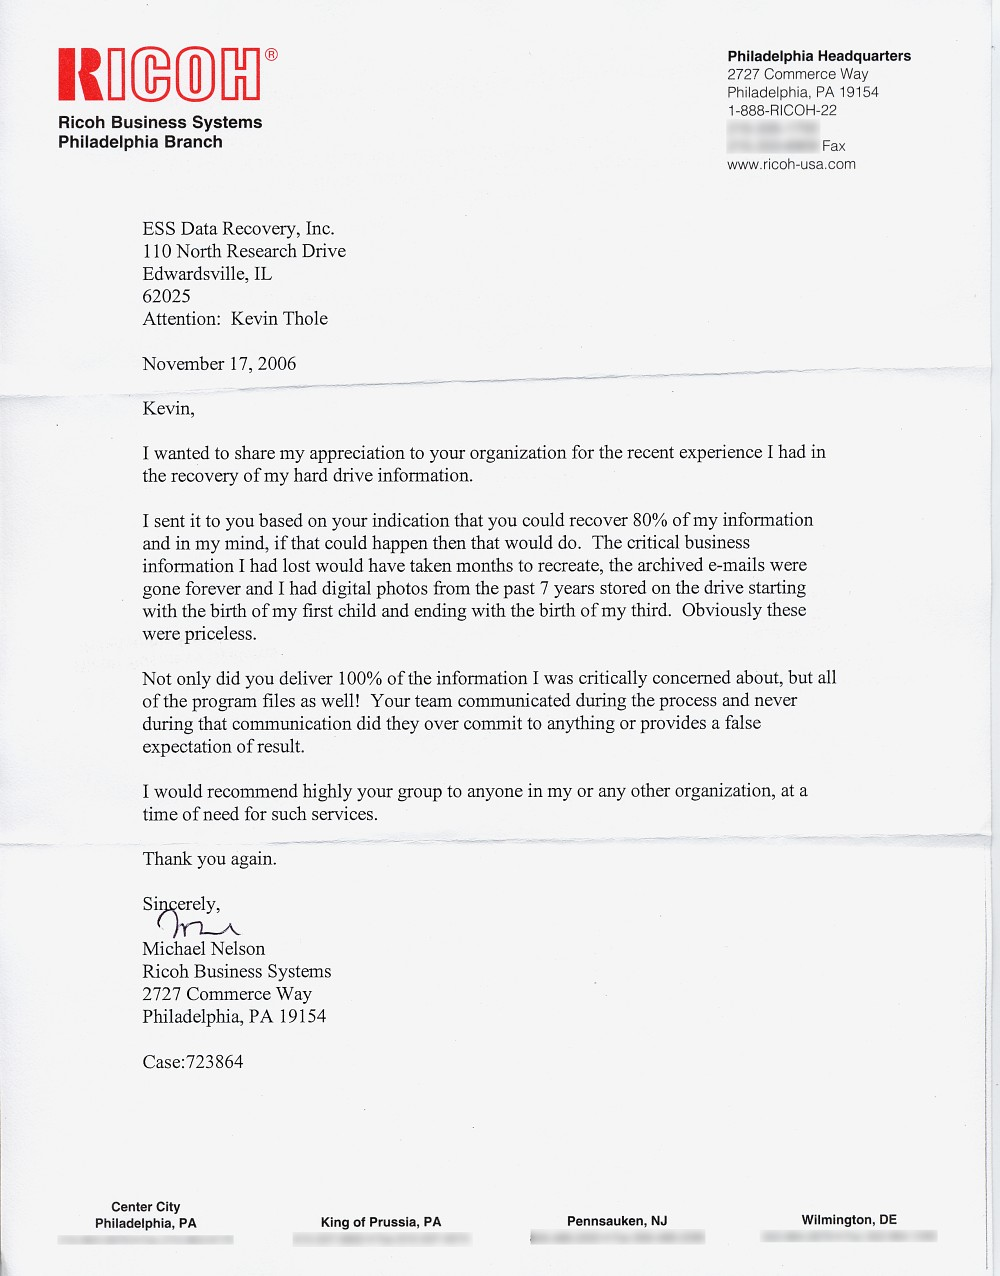 Ricoh Business Systems testimonial letter